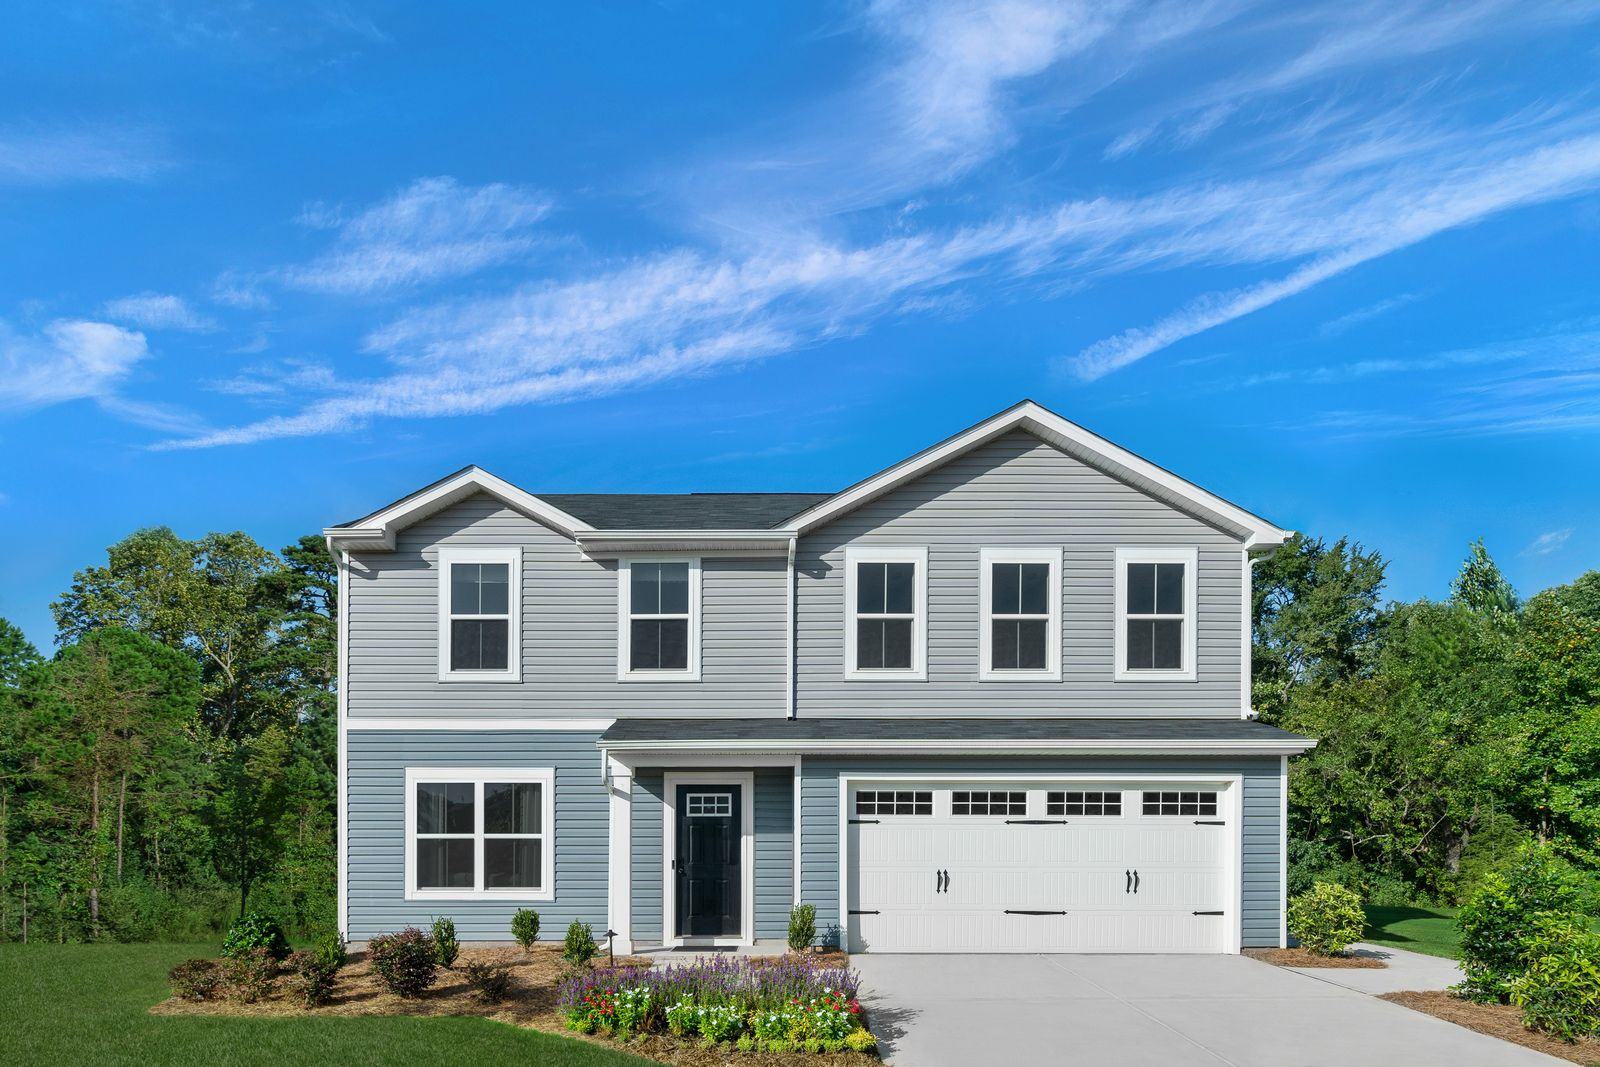 Welcome to Stillwater Crossings:Only new ranch & 2-story homes in West Milton! 3-5 bedrooms, low taxes, all appliances included. Own for little to no money down, close to Rt 55 & 48—from $190s.Click here to join the VIP list!